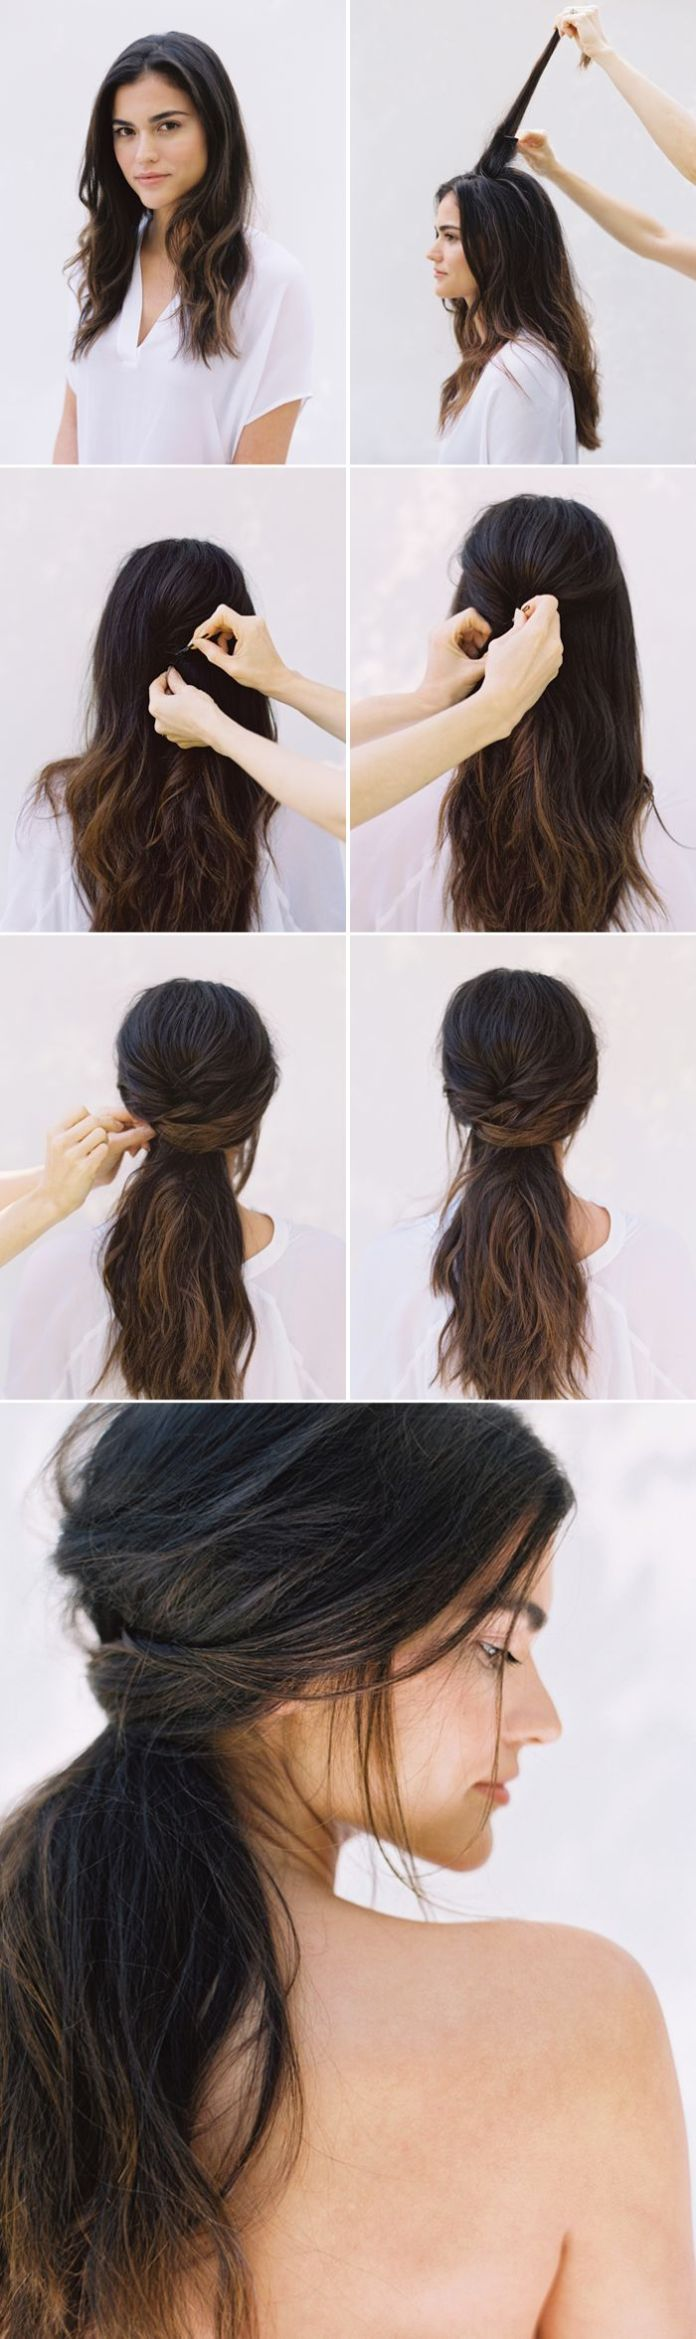 Wedding-Half-up-Half-down Hair Tutorials to Style Your Hair